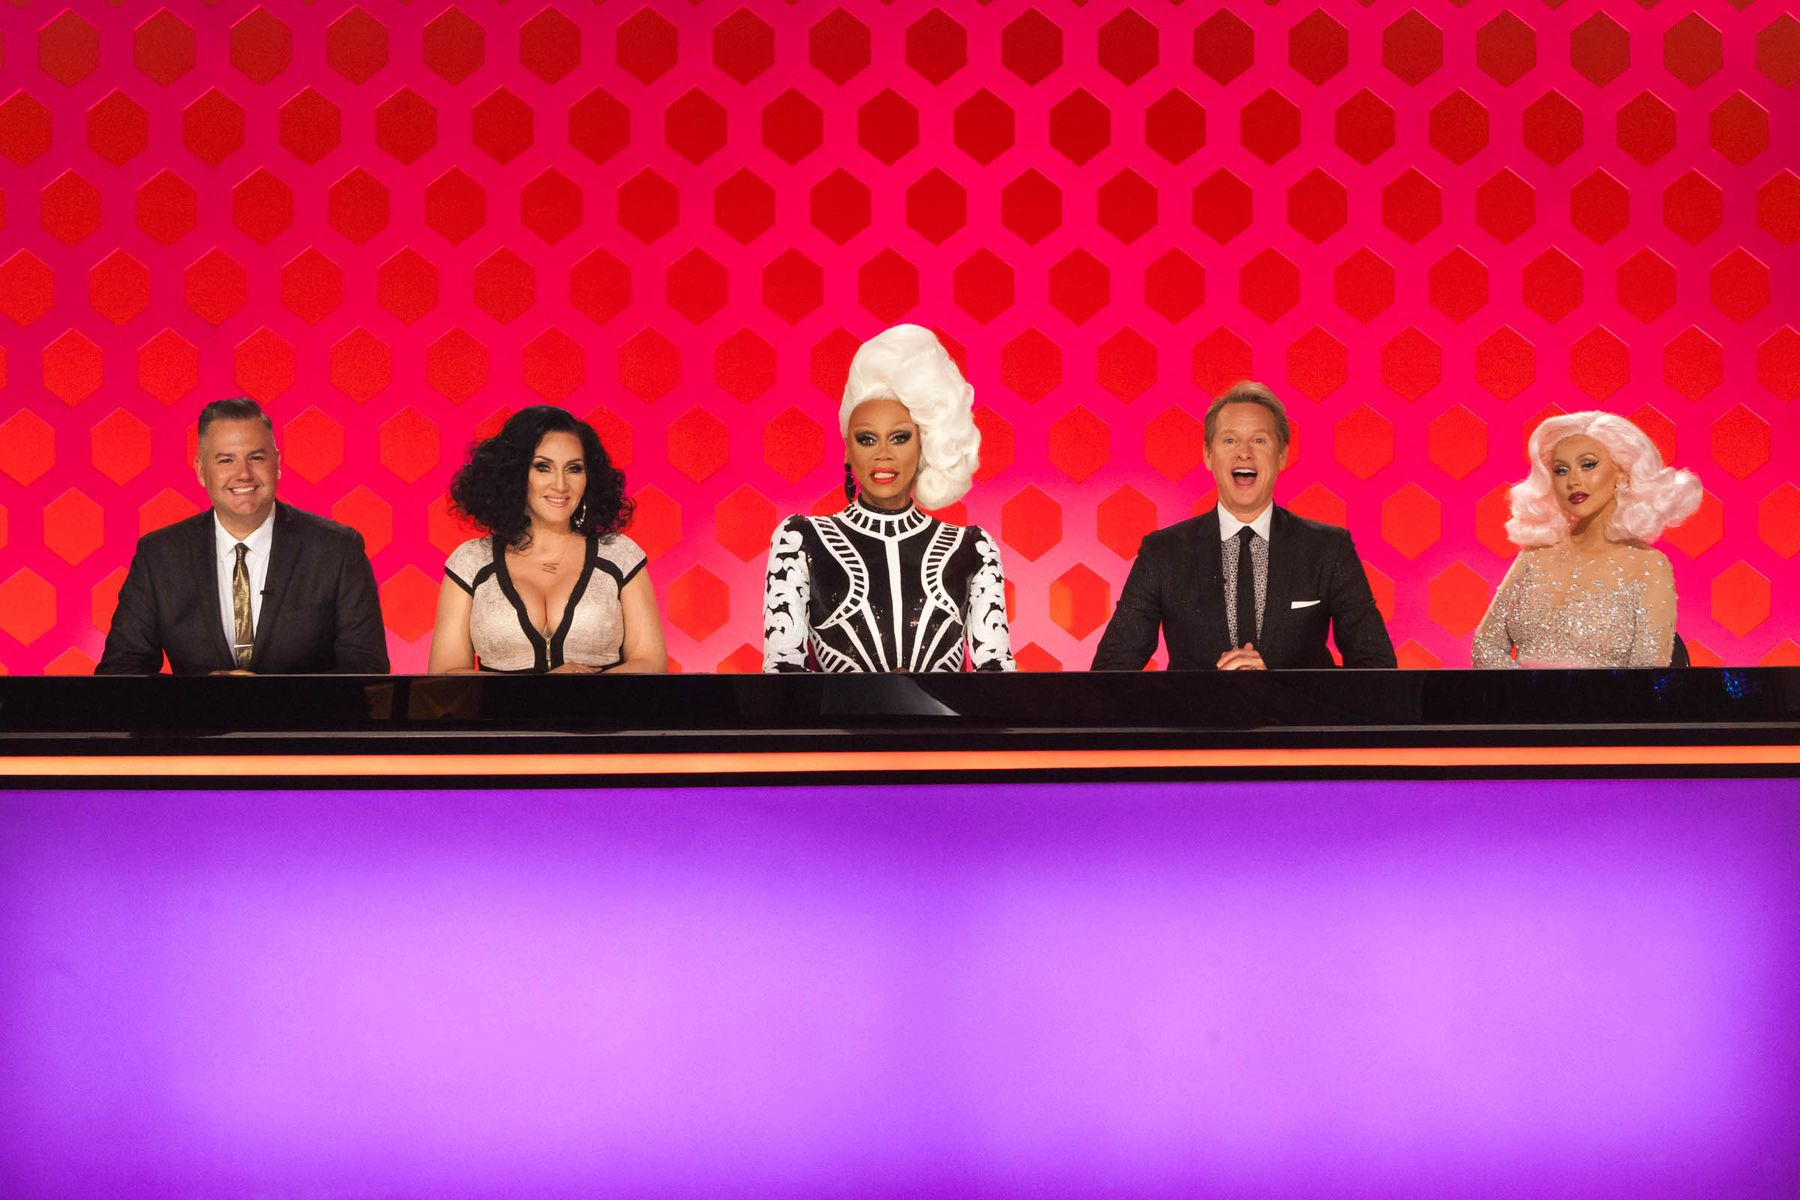 RuPaul's Drag Race Season 10 Judges